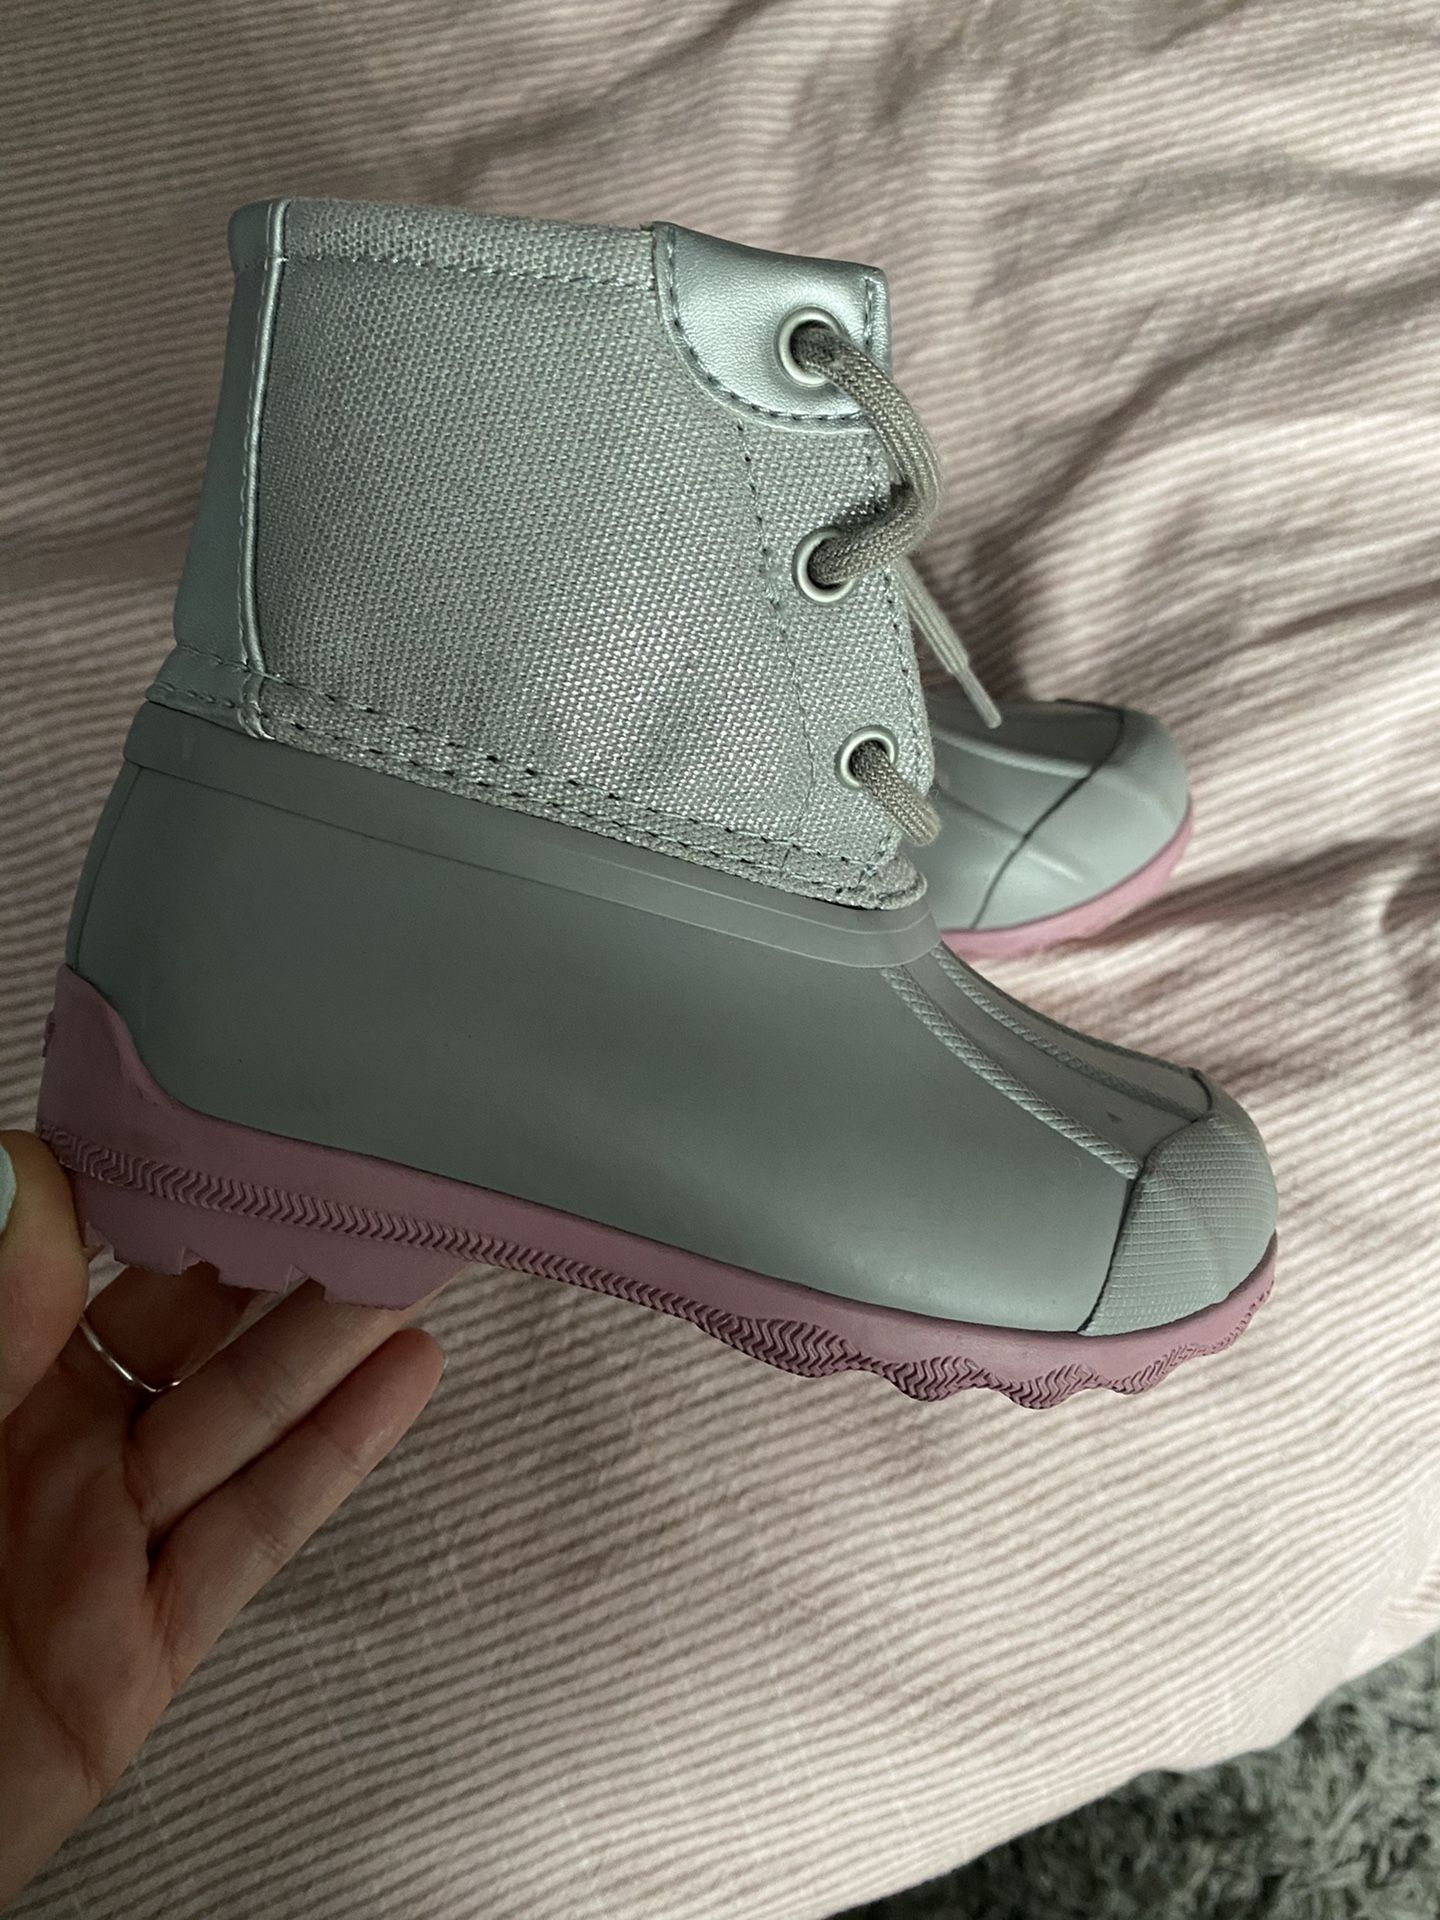 Sperry Toddler Snow Boots